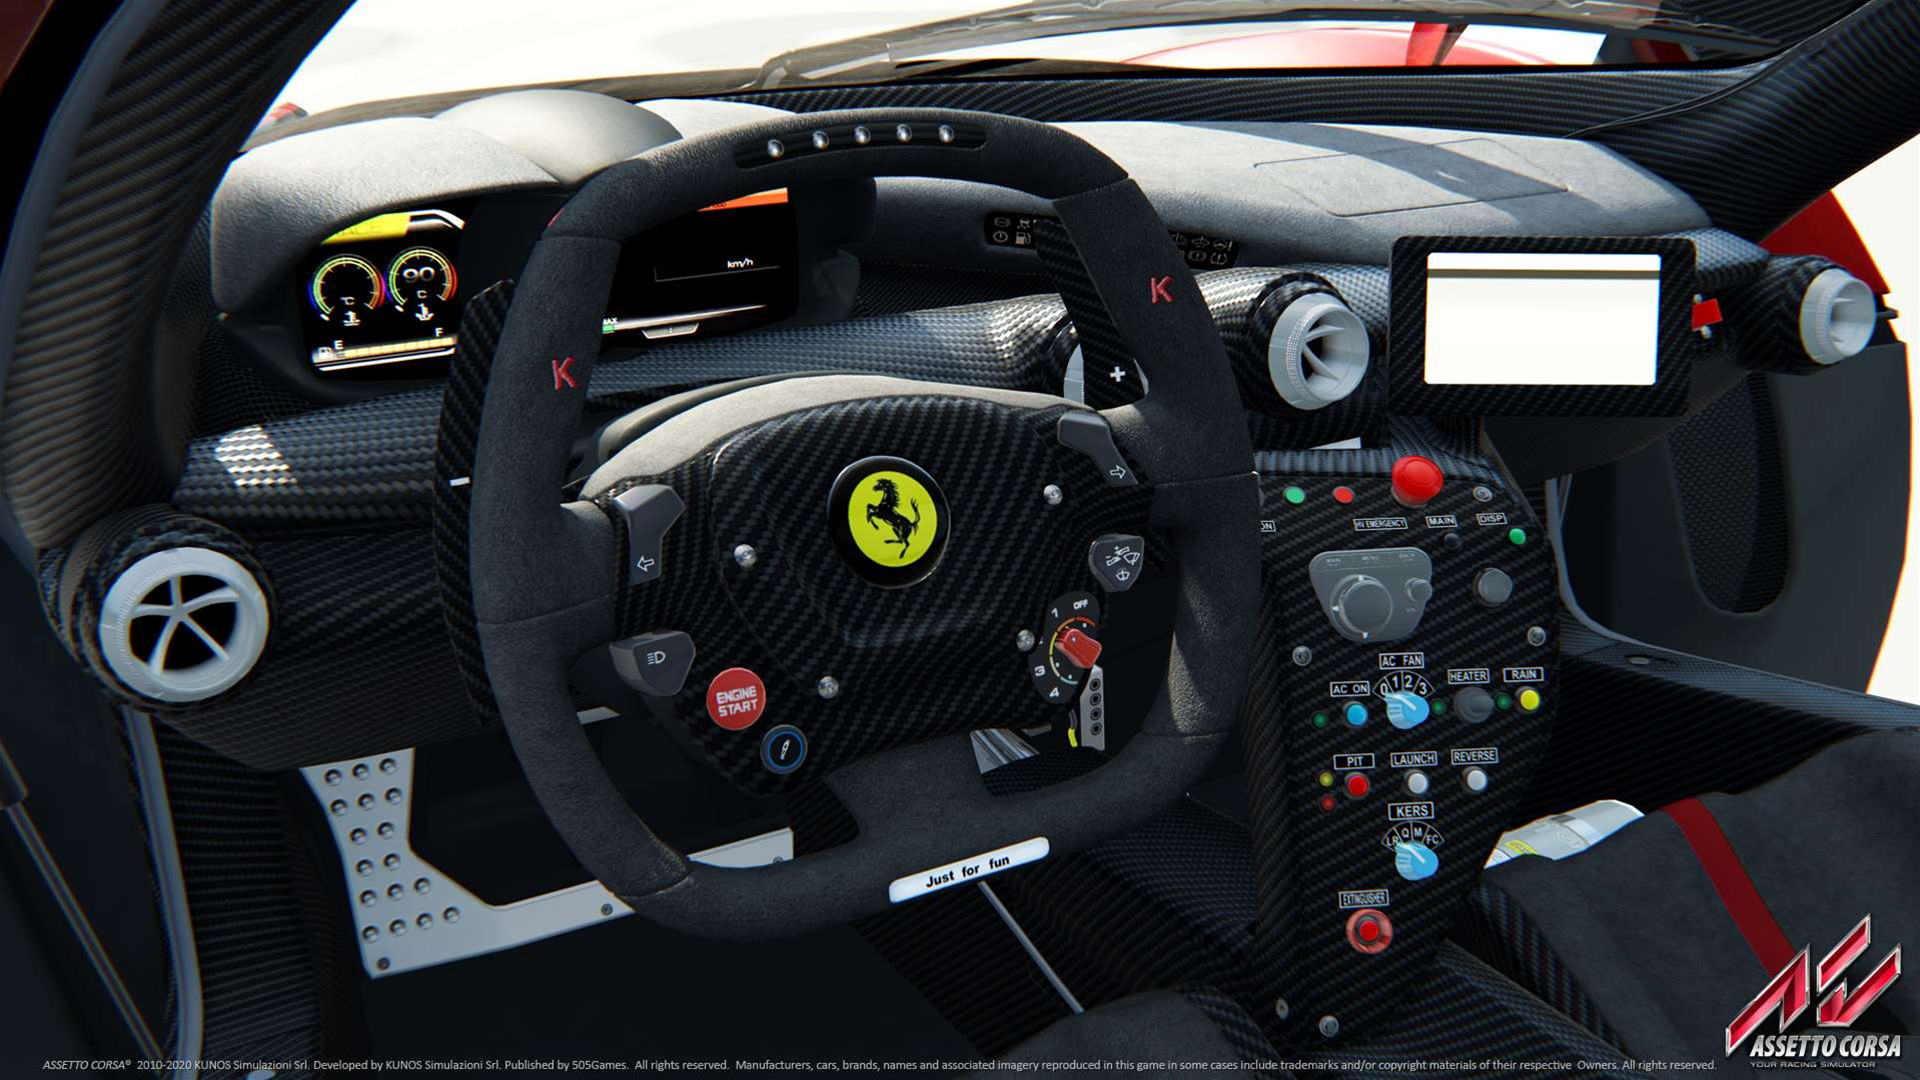 Assetto Corsa on console